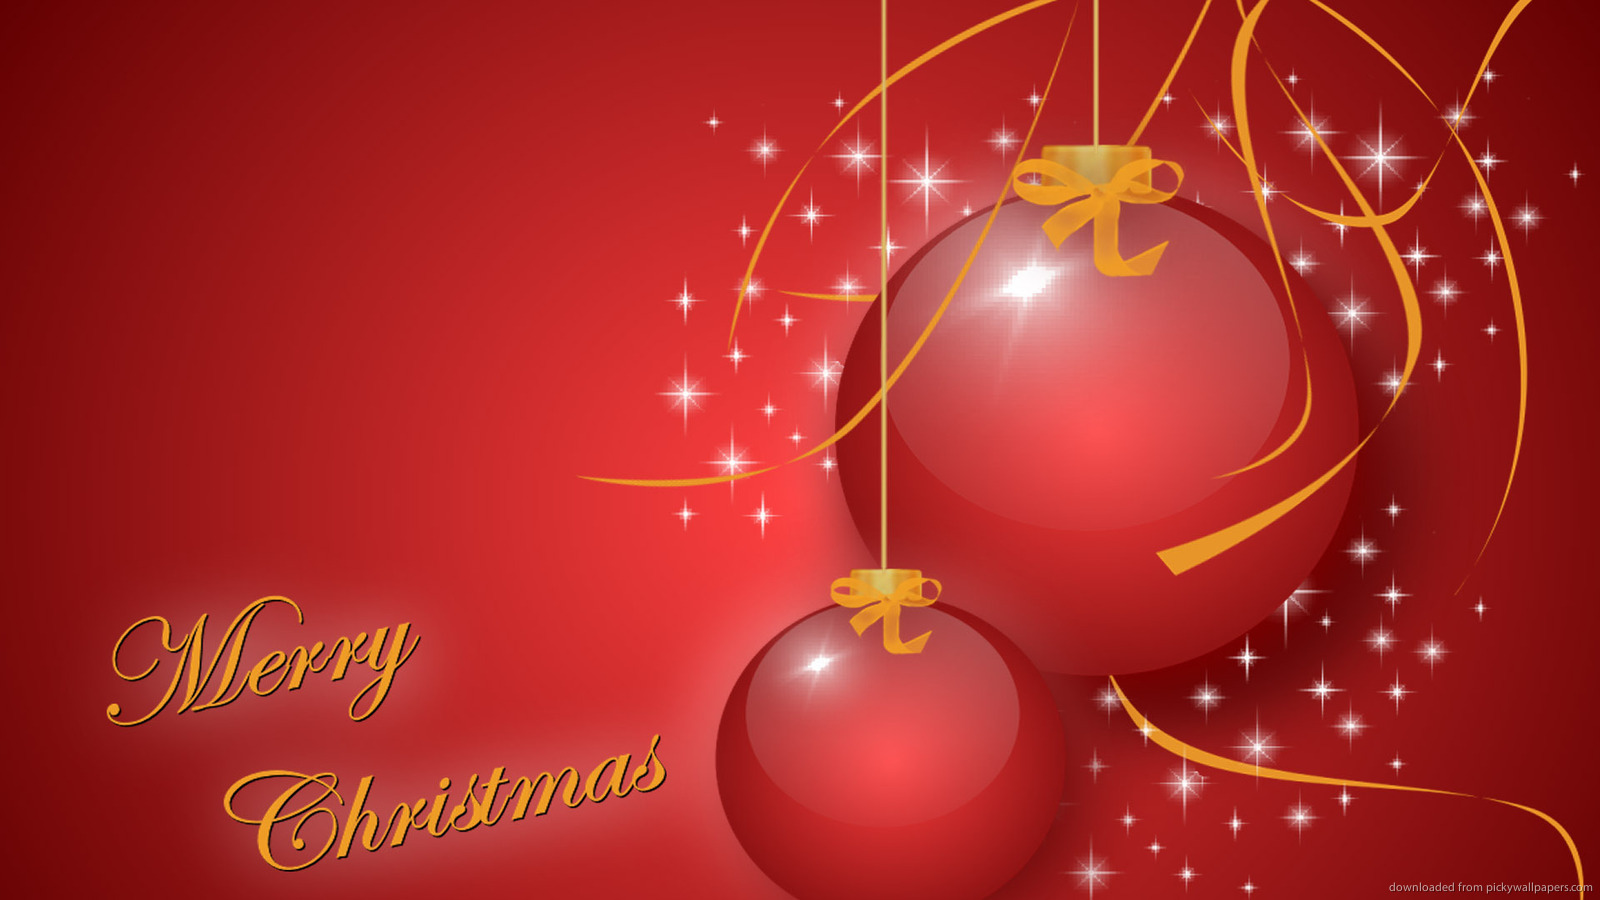 Merry christmas hd wallpapers image greetings free download download merry christmas hd images m4hsunfo Image collections